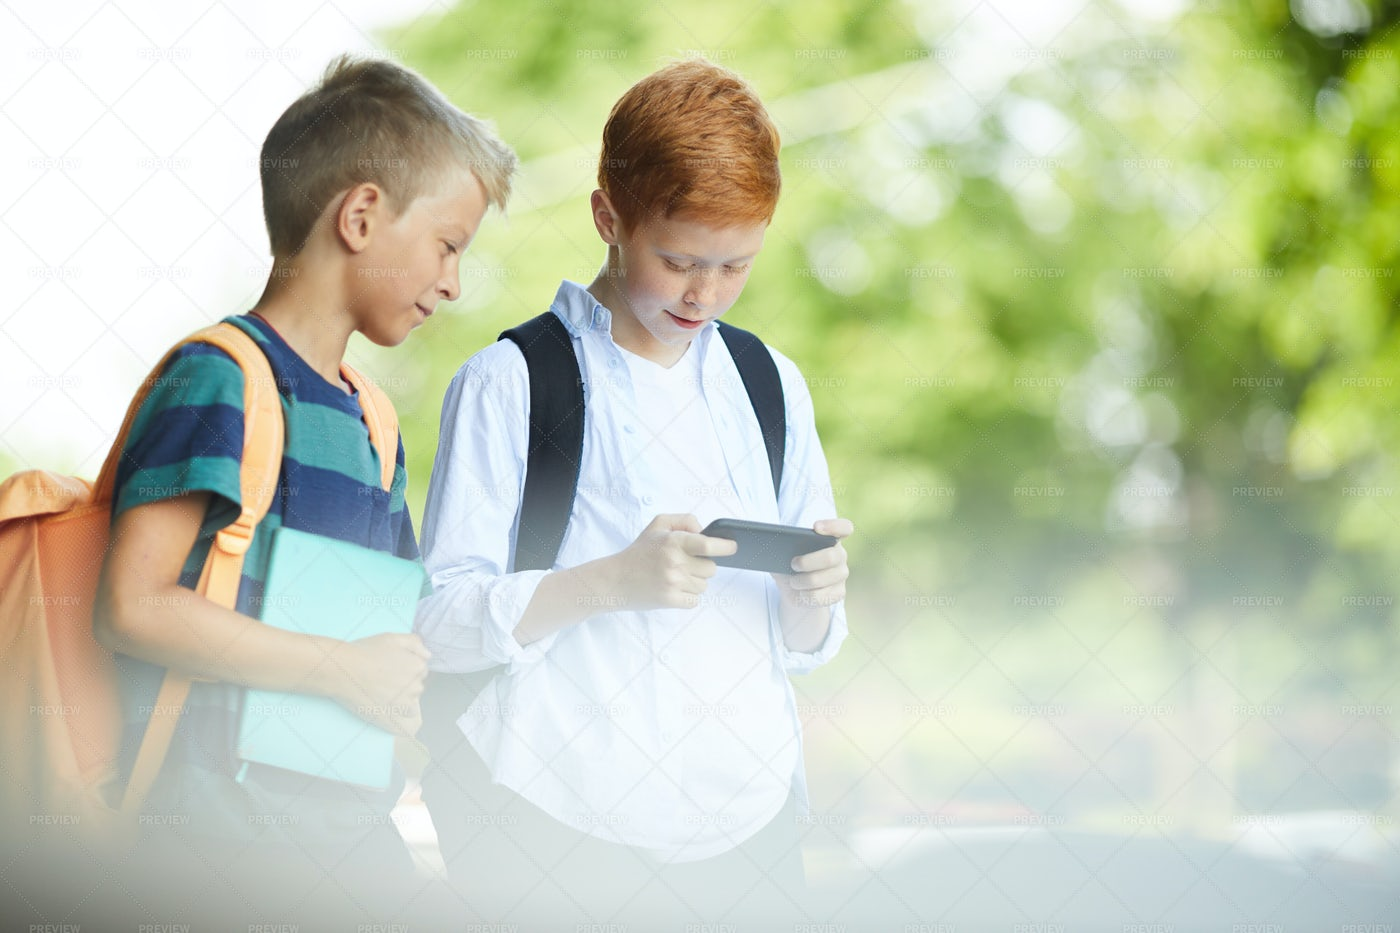 Kids Playing With Phone: Stock Photos